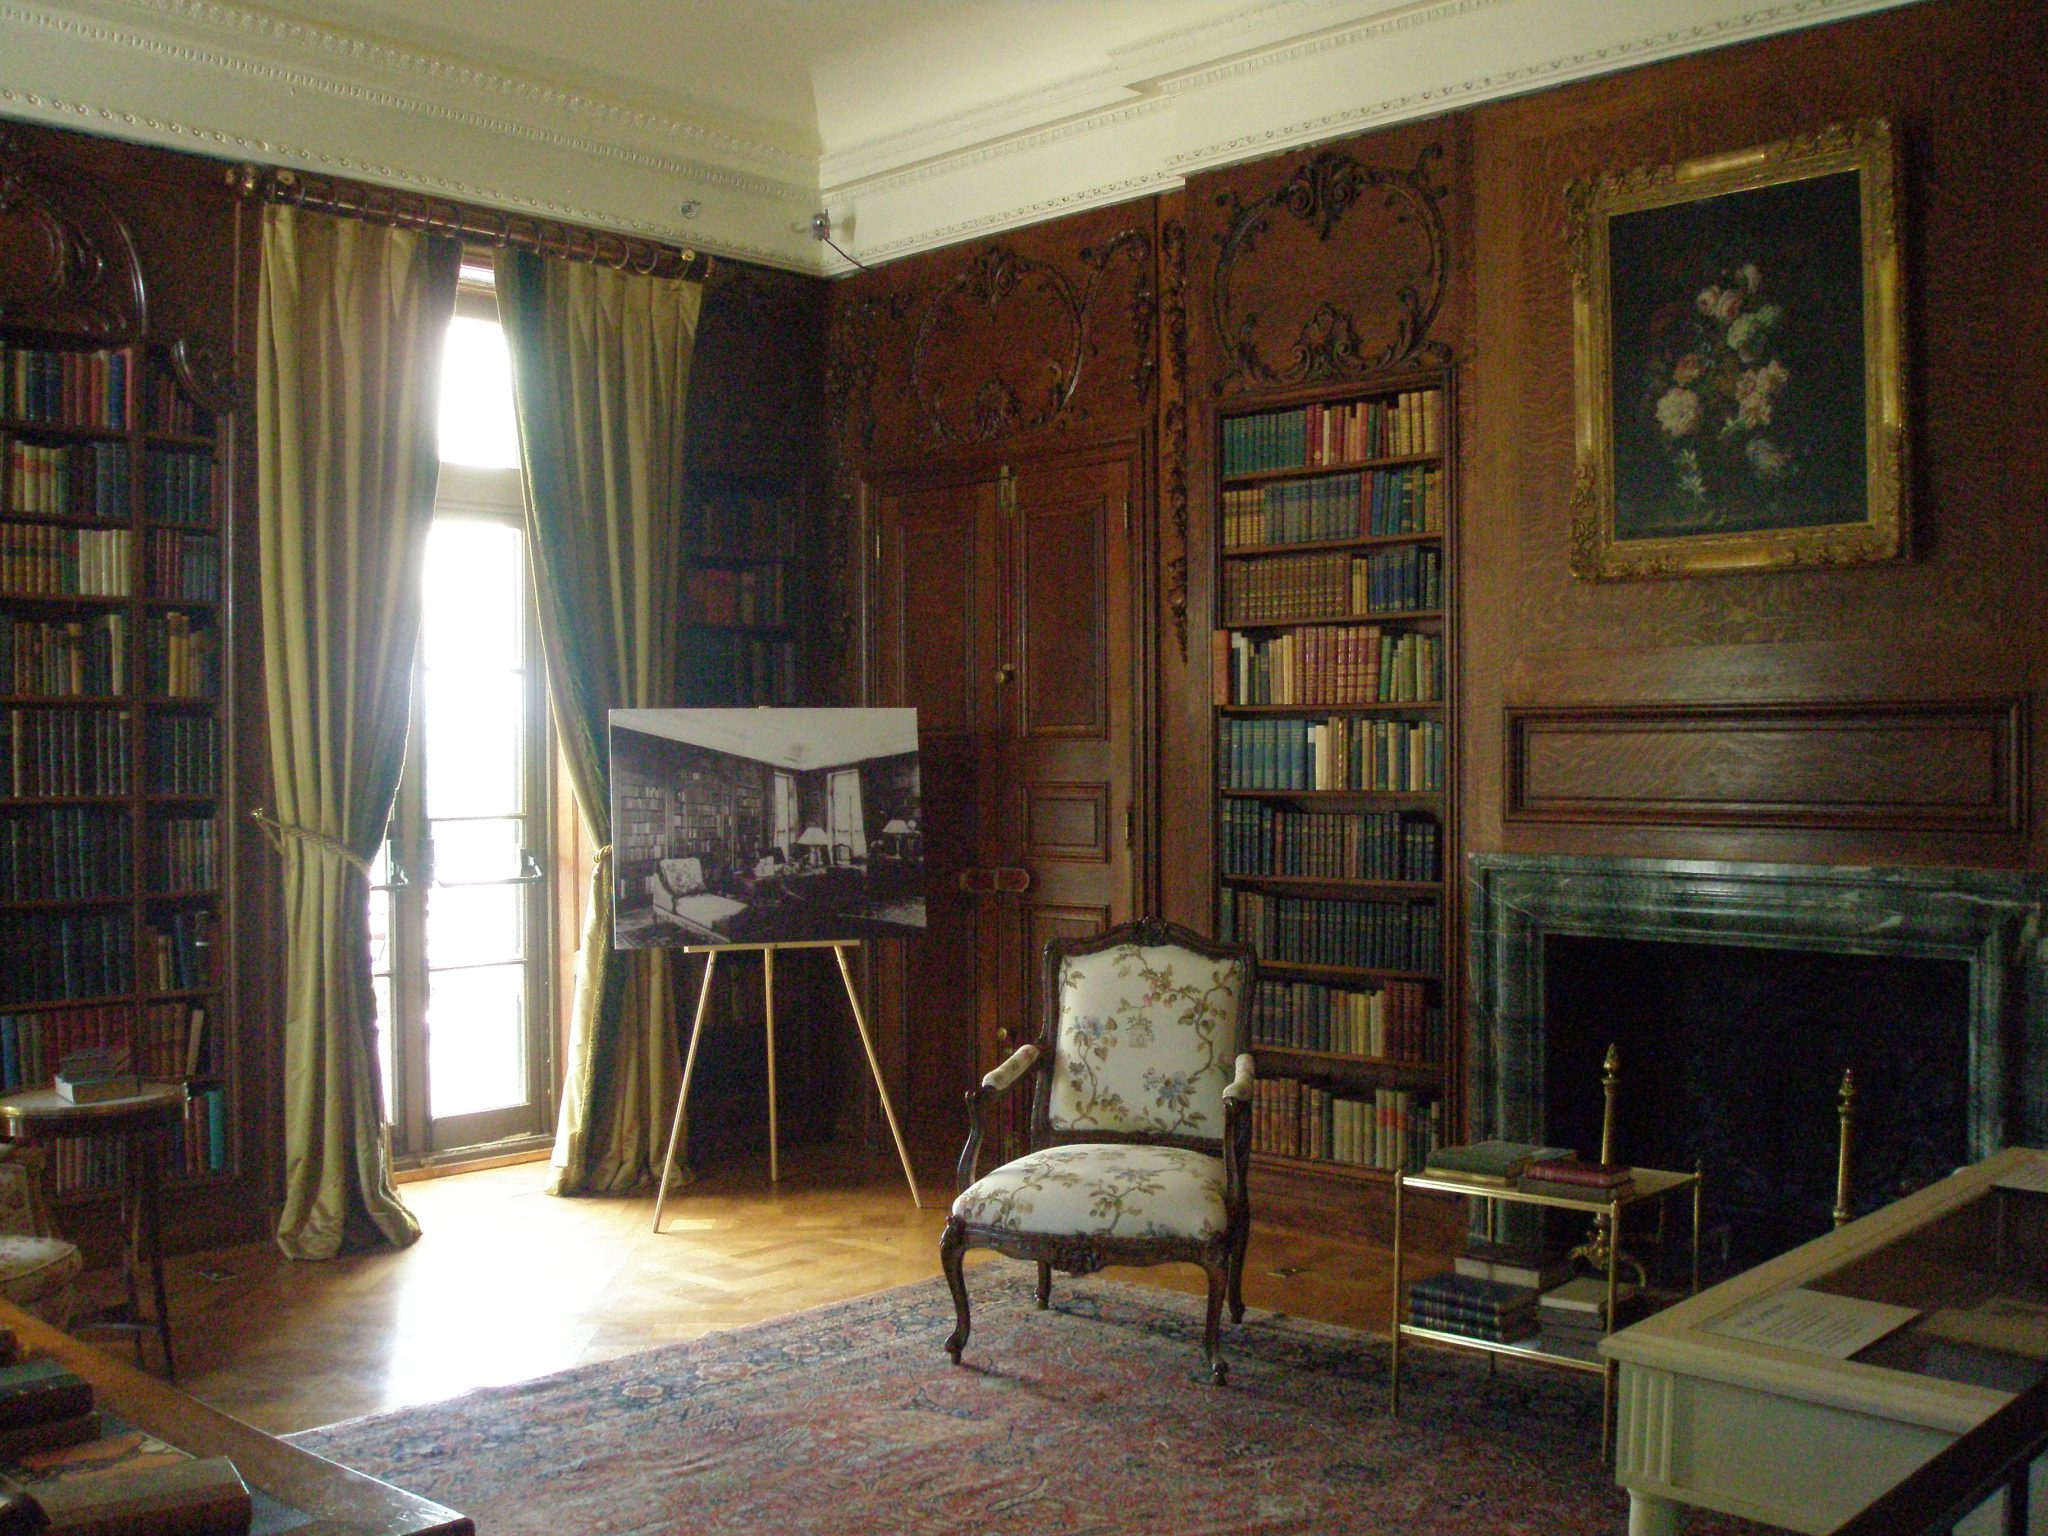 Another view of The Library